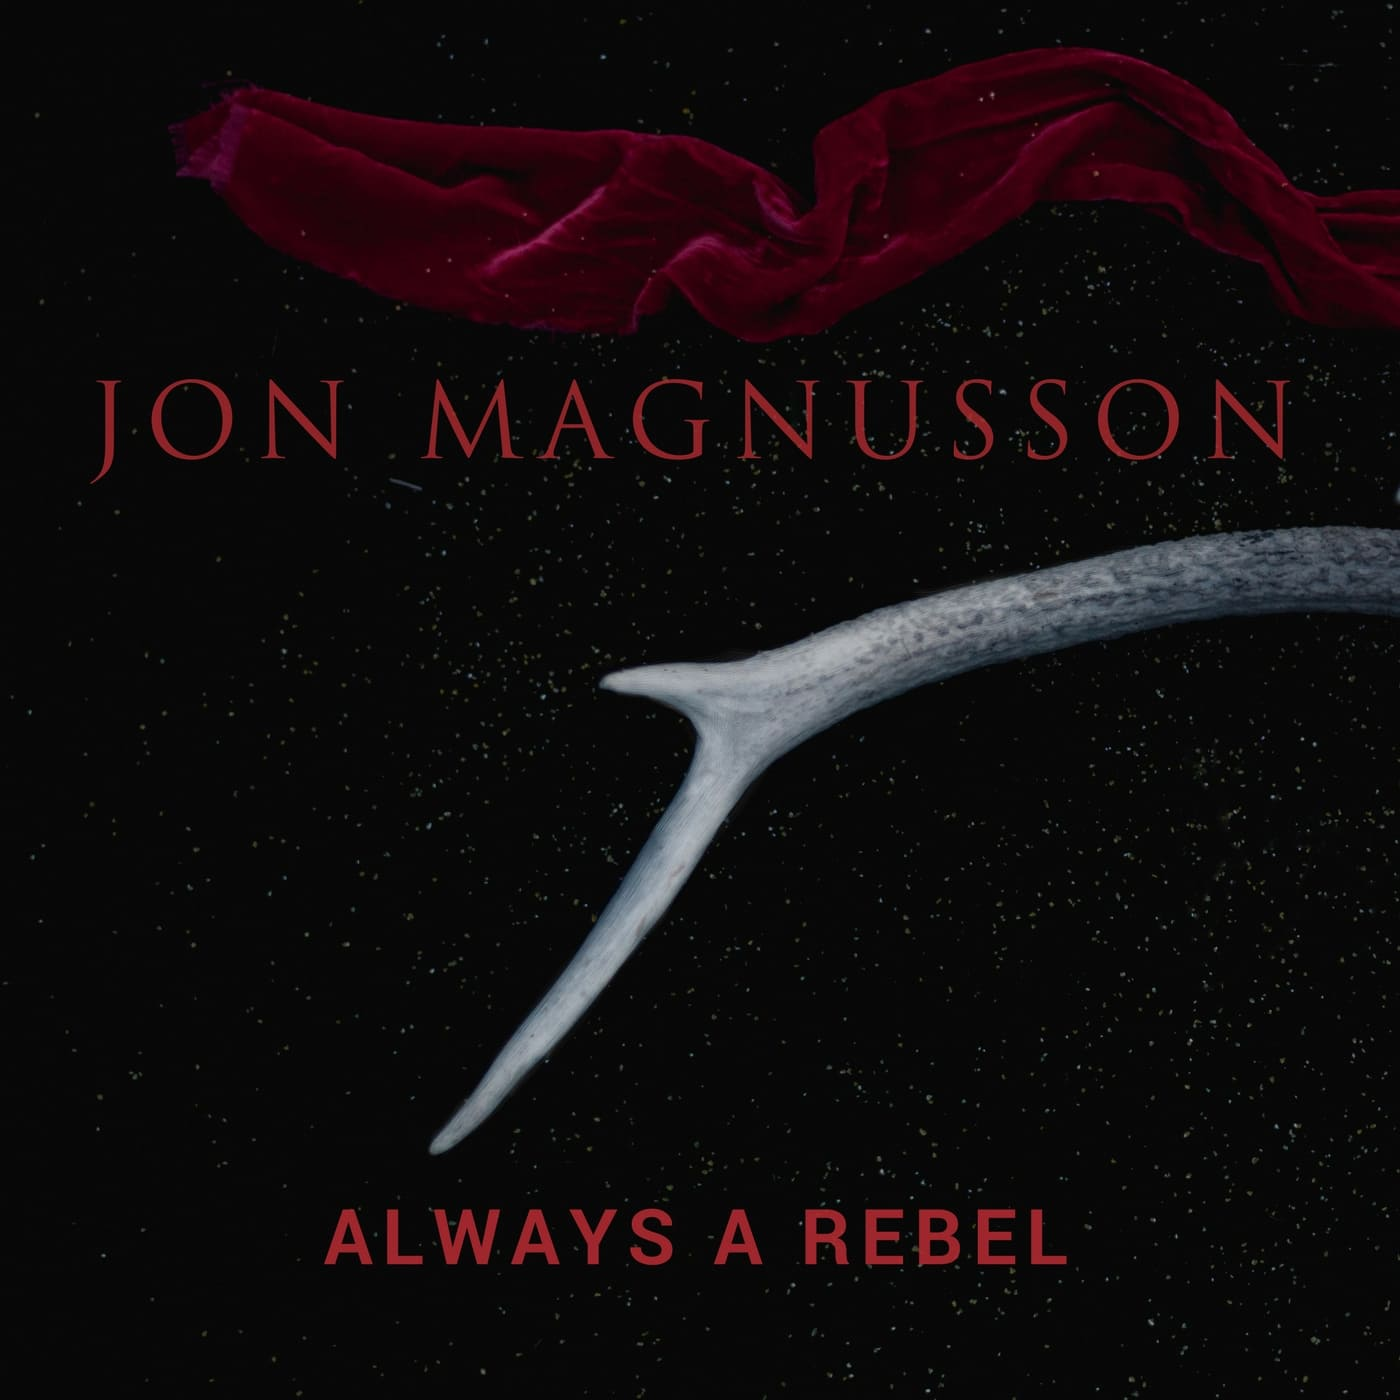 Cover image for Always a Rebel by Jon Magnusson